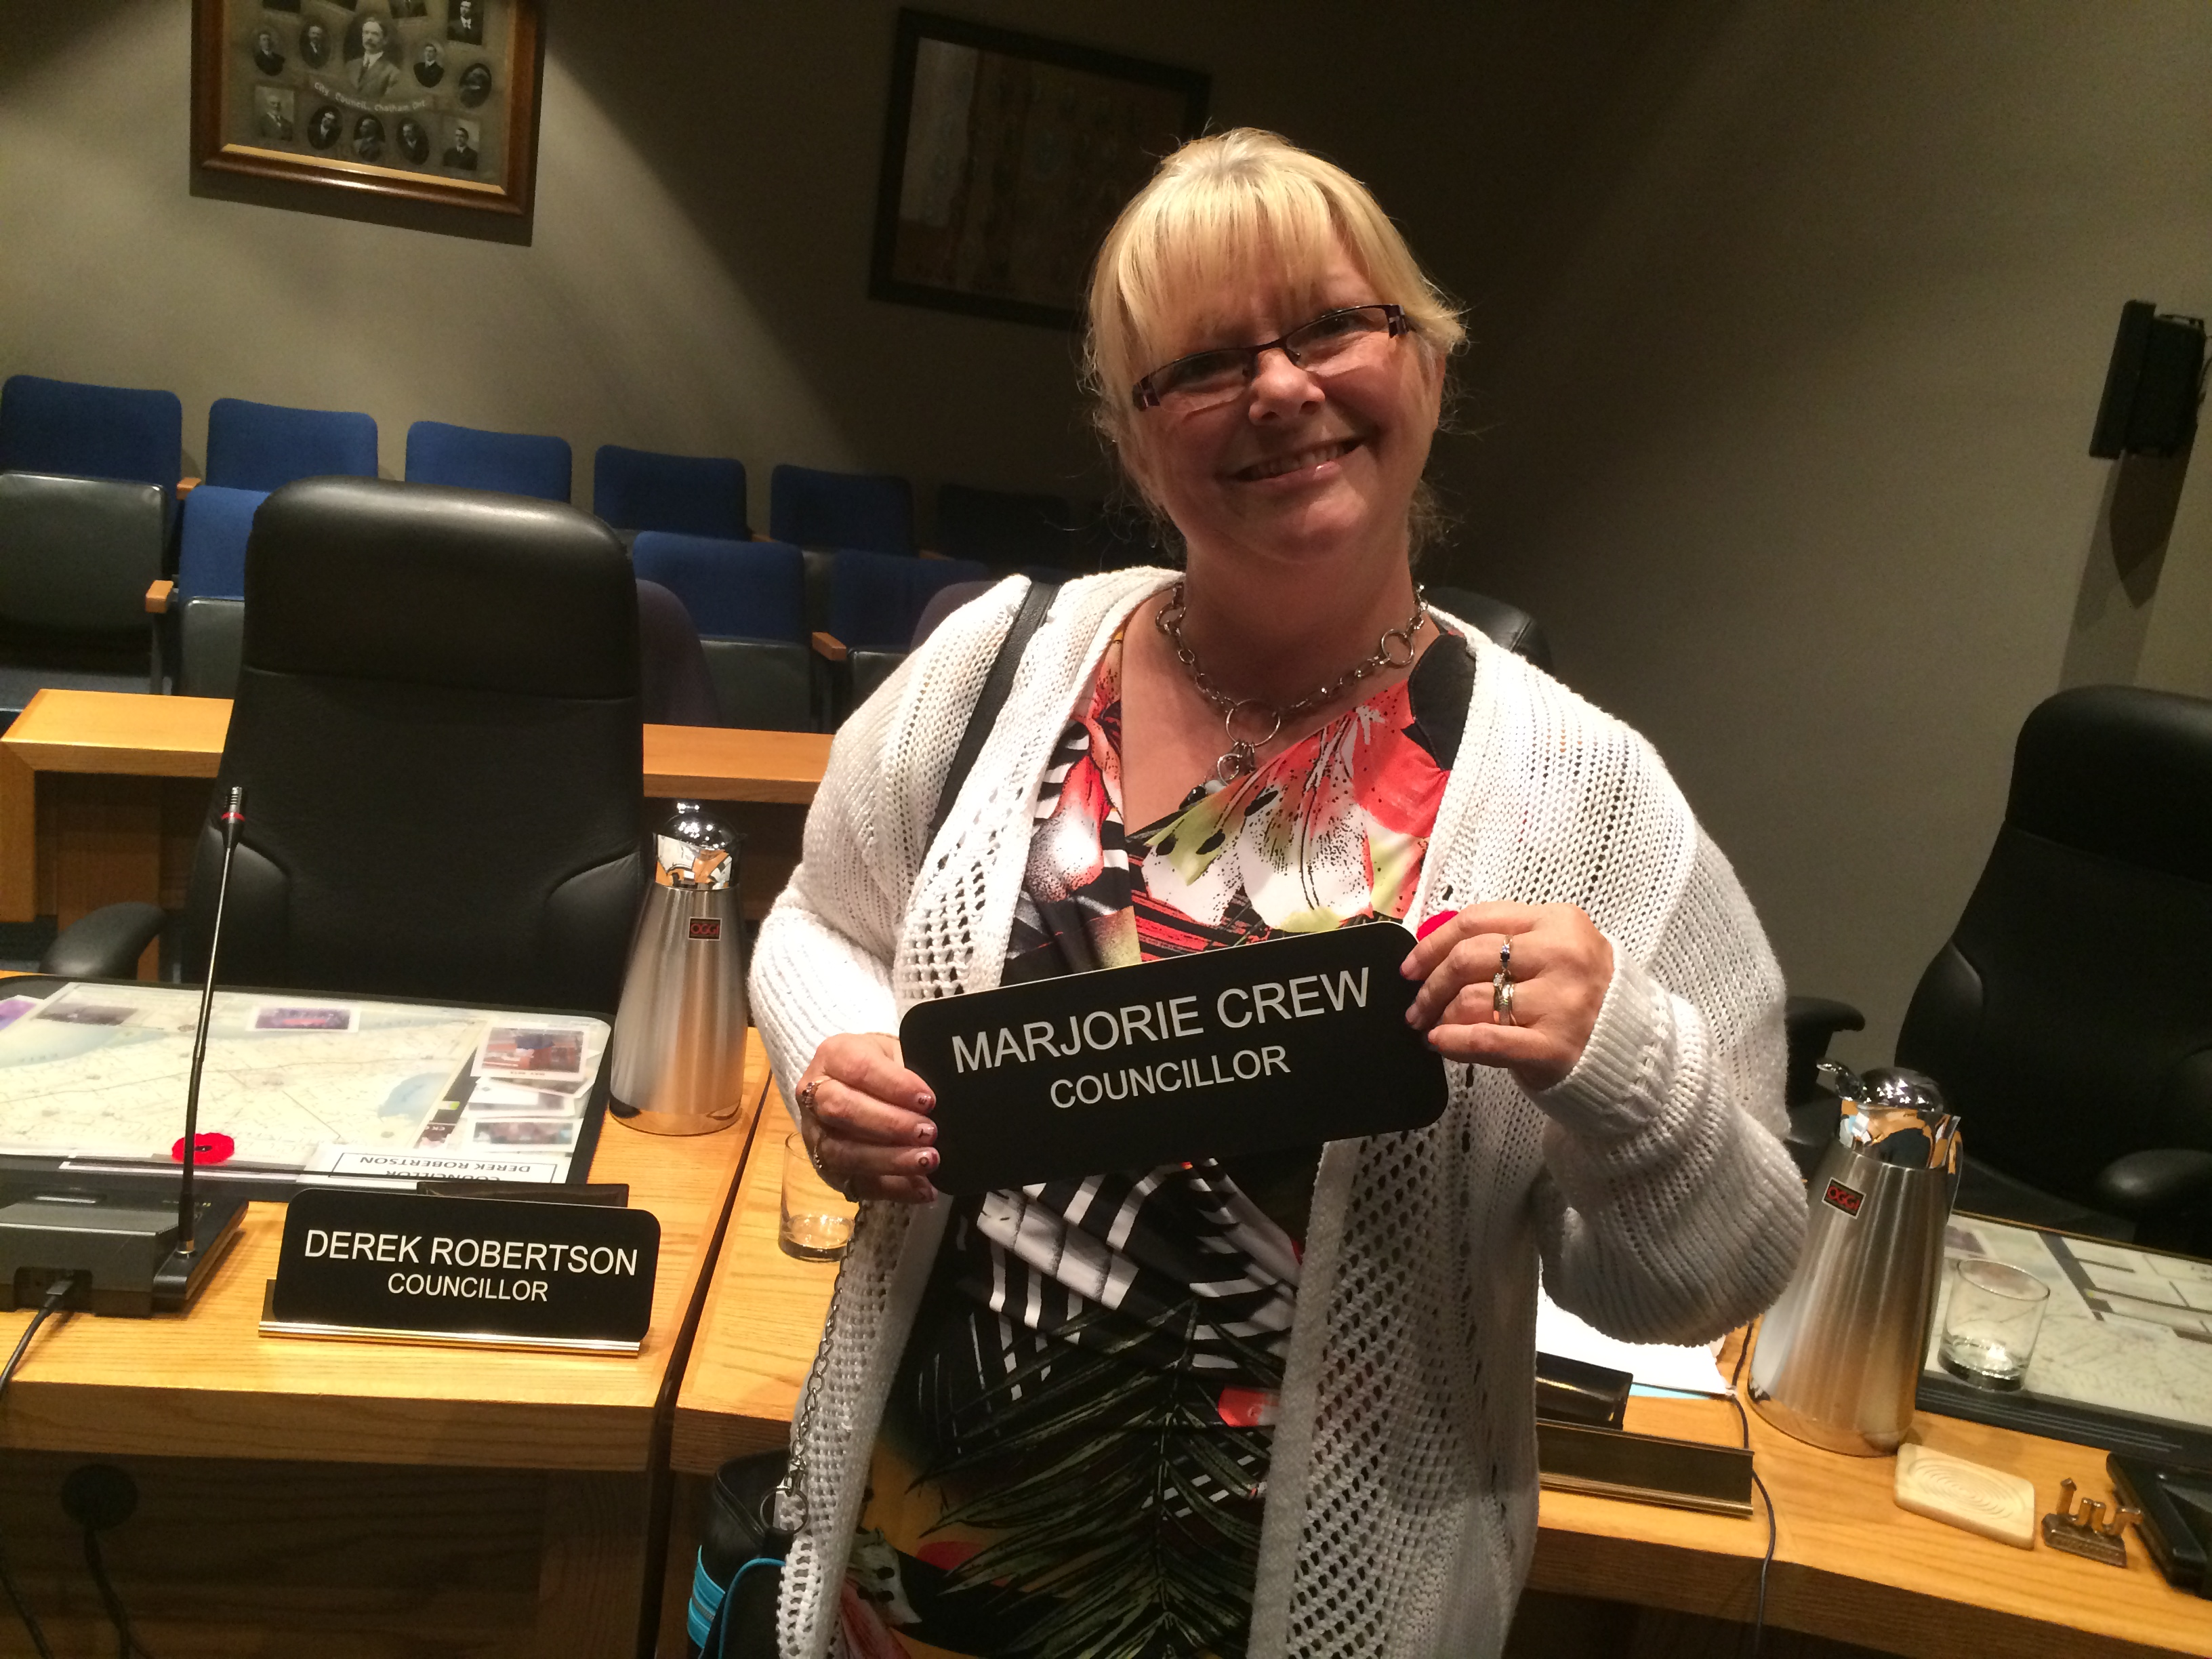 Marjorie Crew poses for photos on her last council meeting as a Chatham-Kent councillor on November 3, 2014. (Photo by Ricardo Veneza)